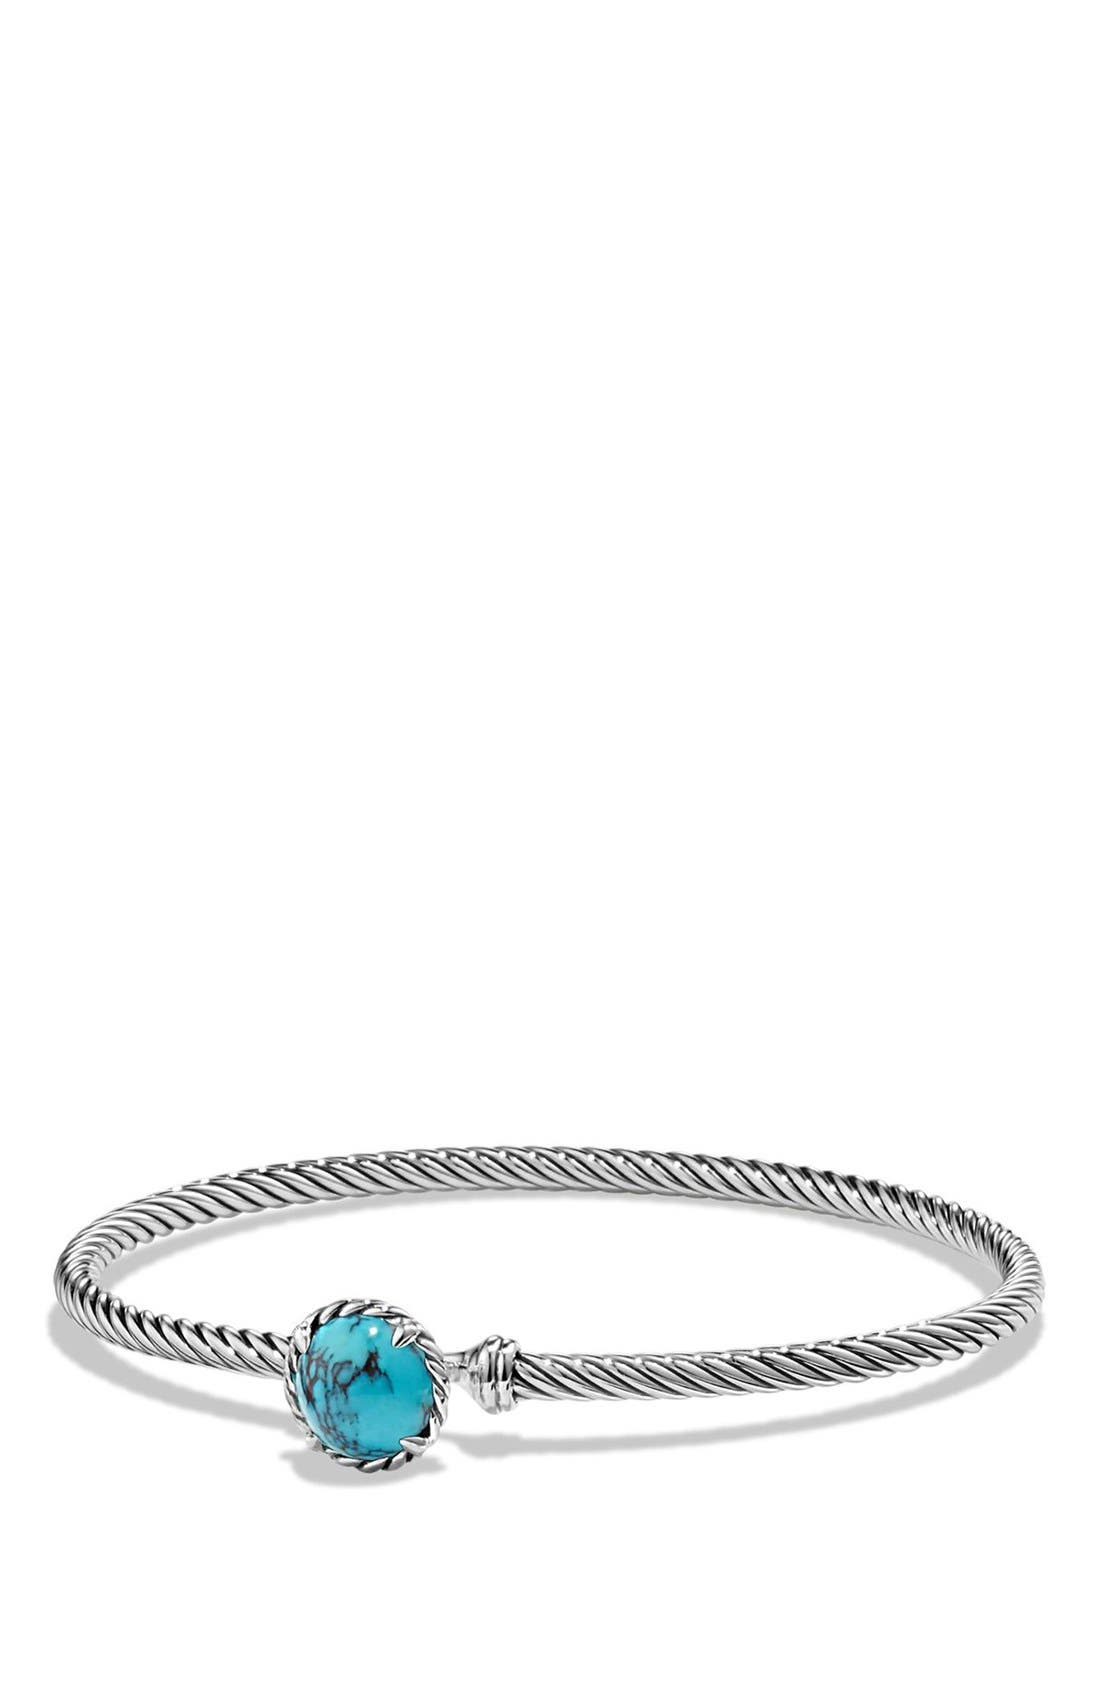 DAVID YURMAN 'Châtelaine' Bracelet, Main, color, SILVER/ CHINESE TURQUOISE